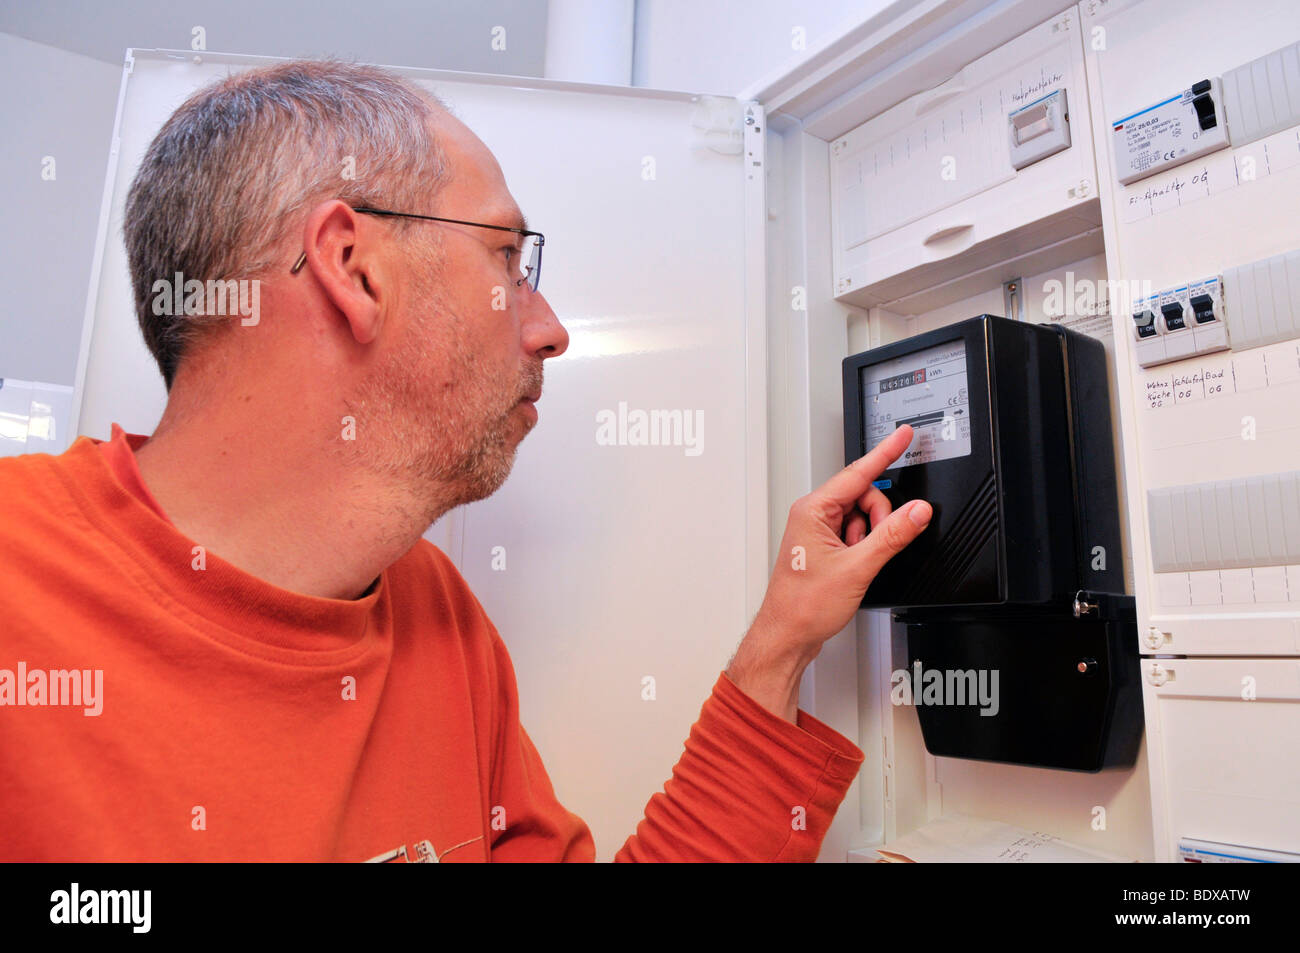 Man reading electricity meter - Stock Image